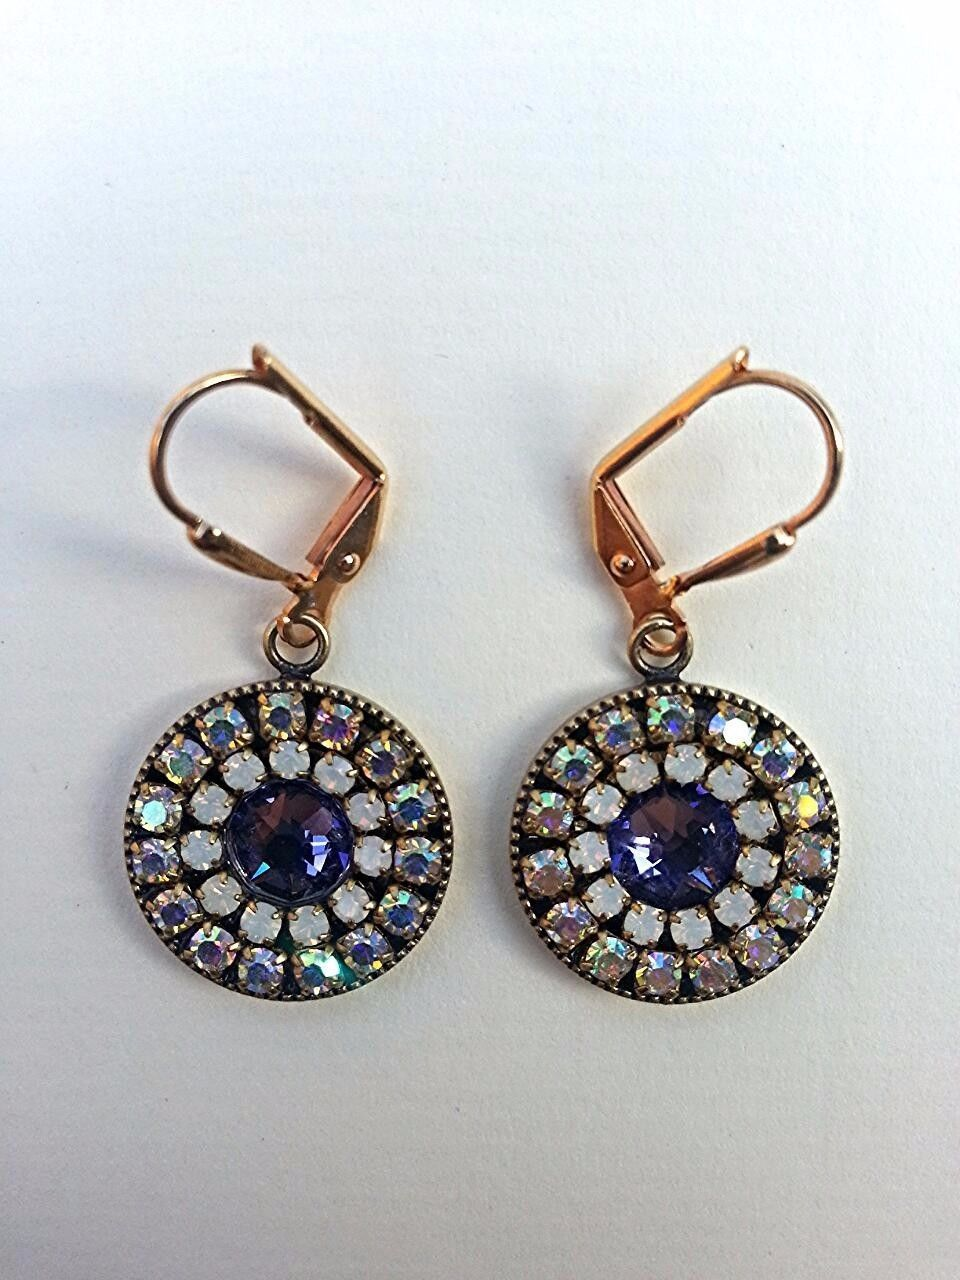 Bridal earrings, Swarovski, European crystals. For sensitive skin. Free Shipping